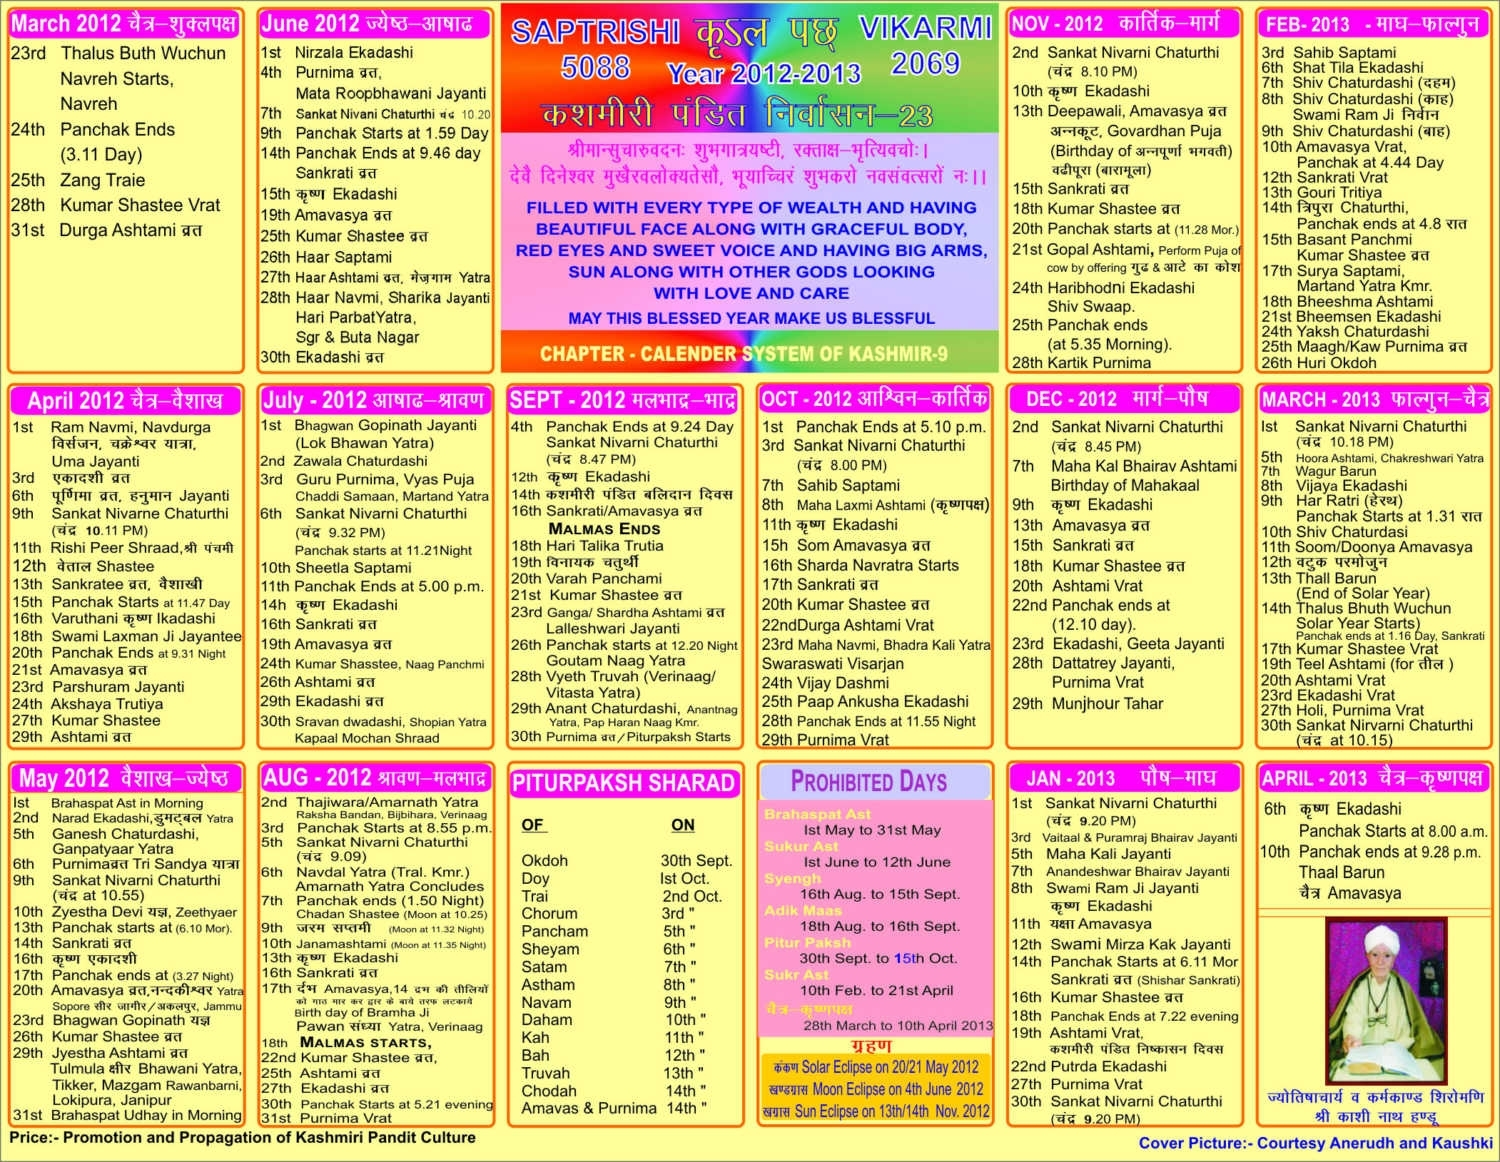 Category: Calendar 121 | Thegioithamdep pertaining to Hindu Calendar With Tithi 2012 March